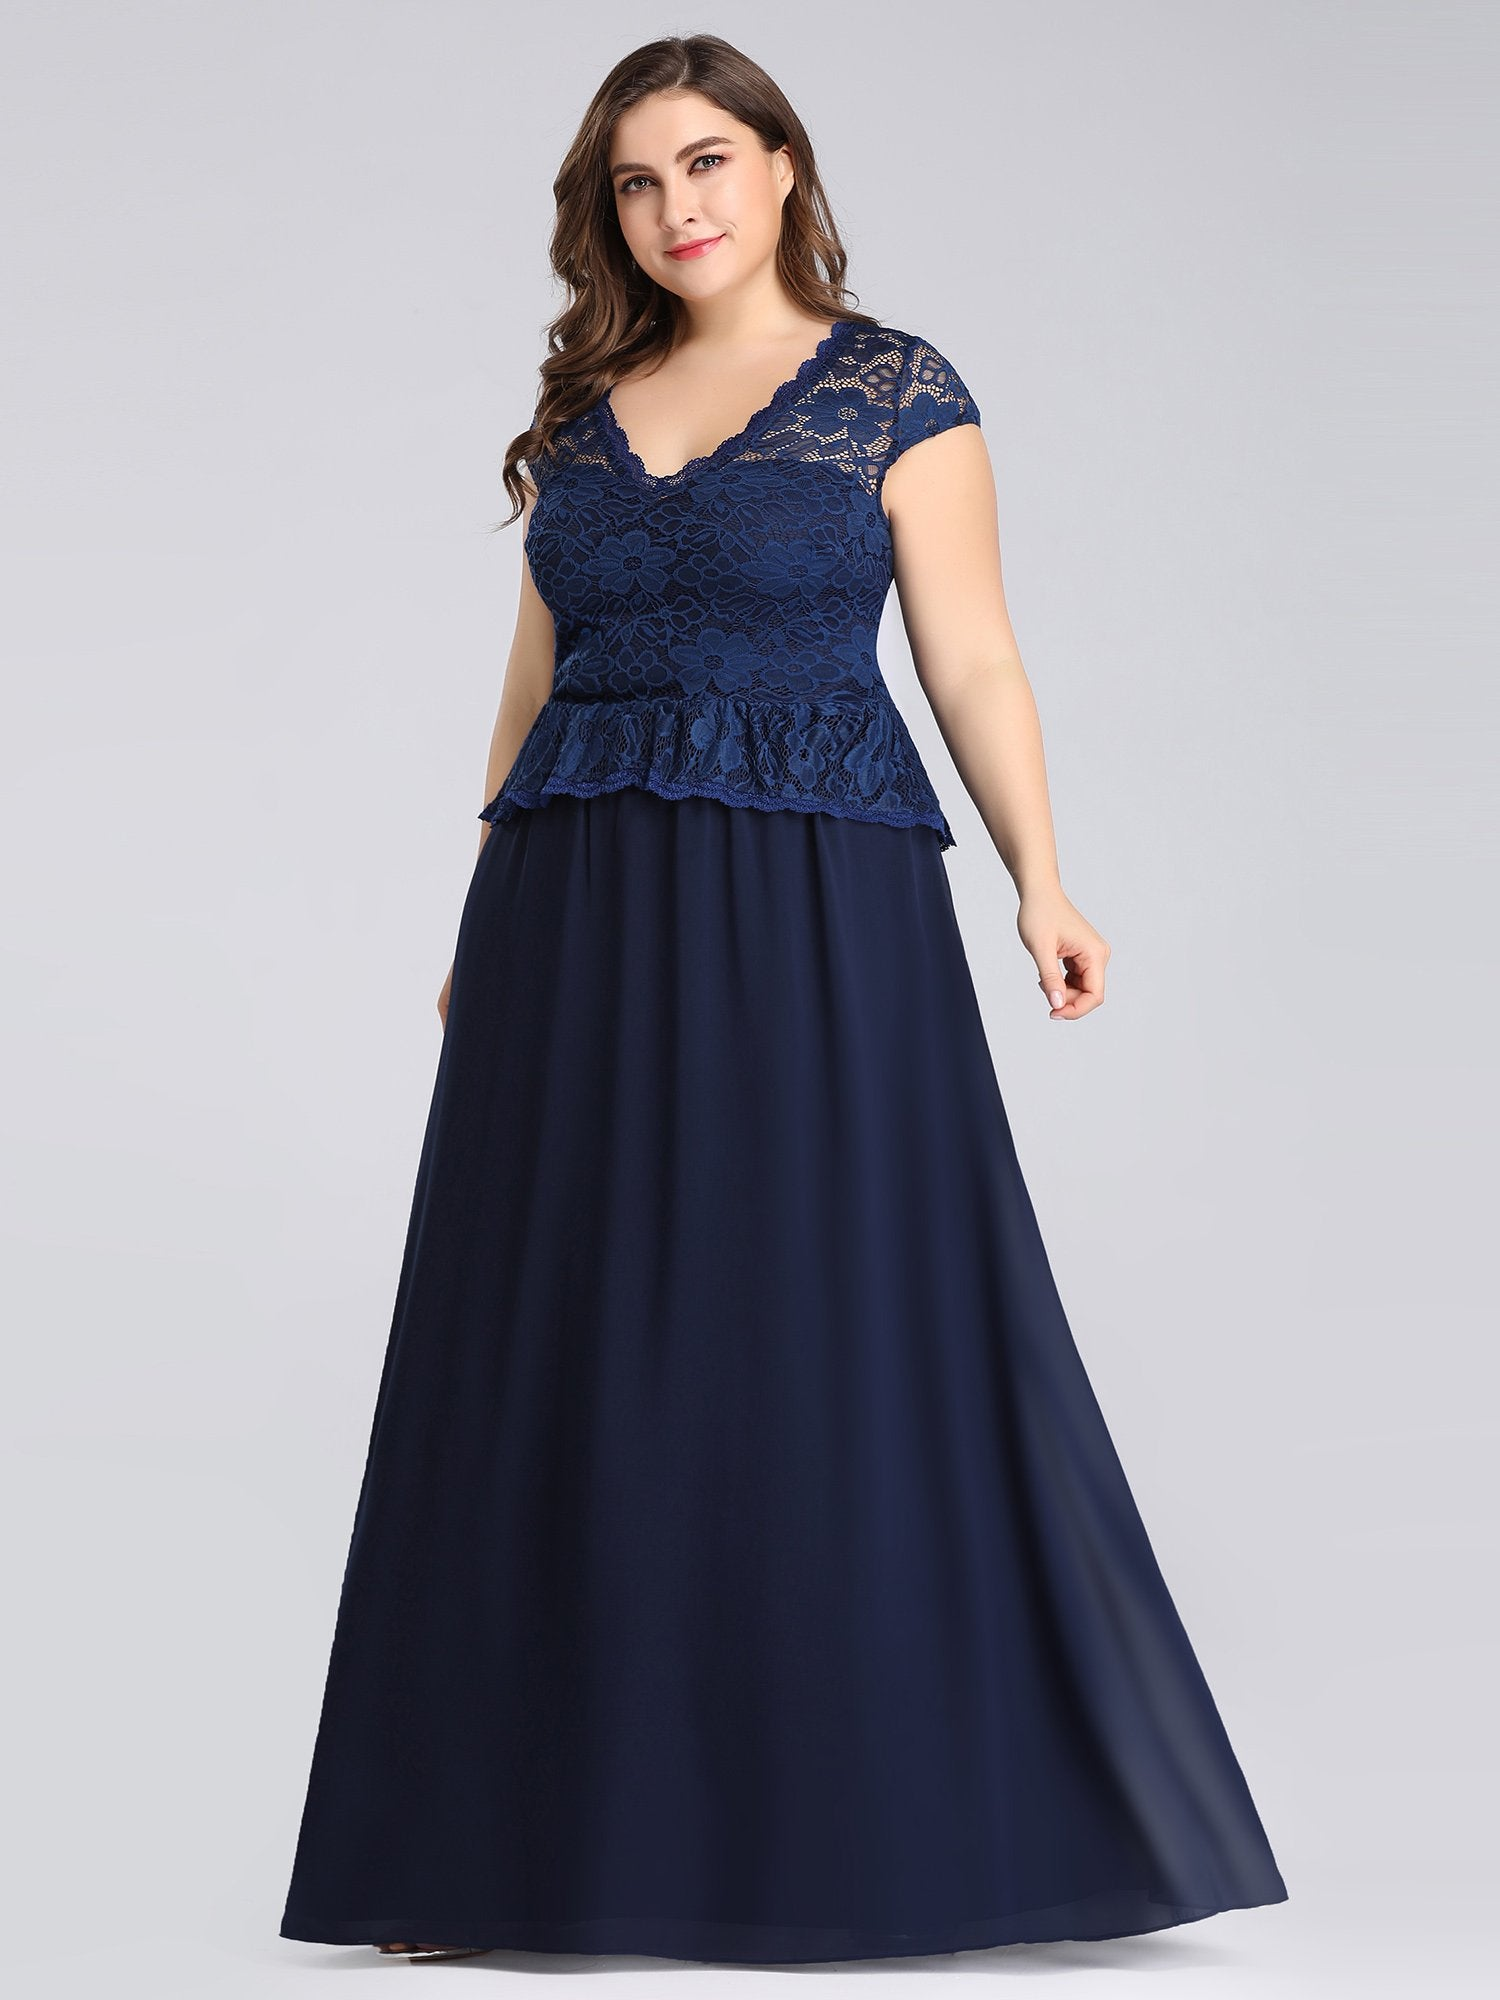 4a4811580298f Long Navy Blue Evening Dress with Lace Bodice